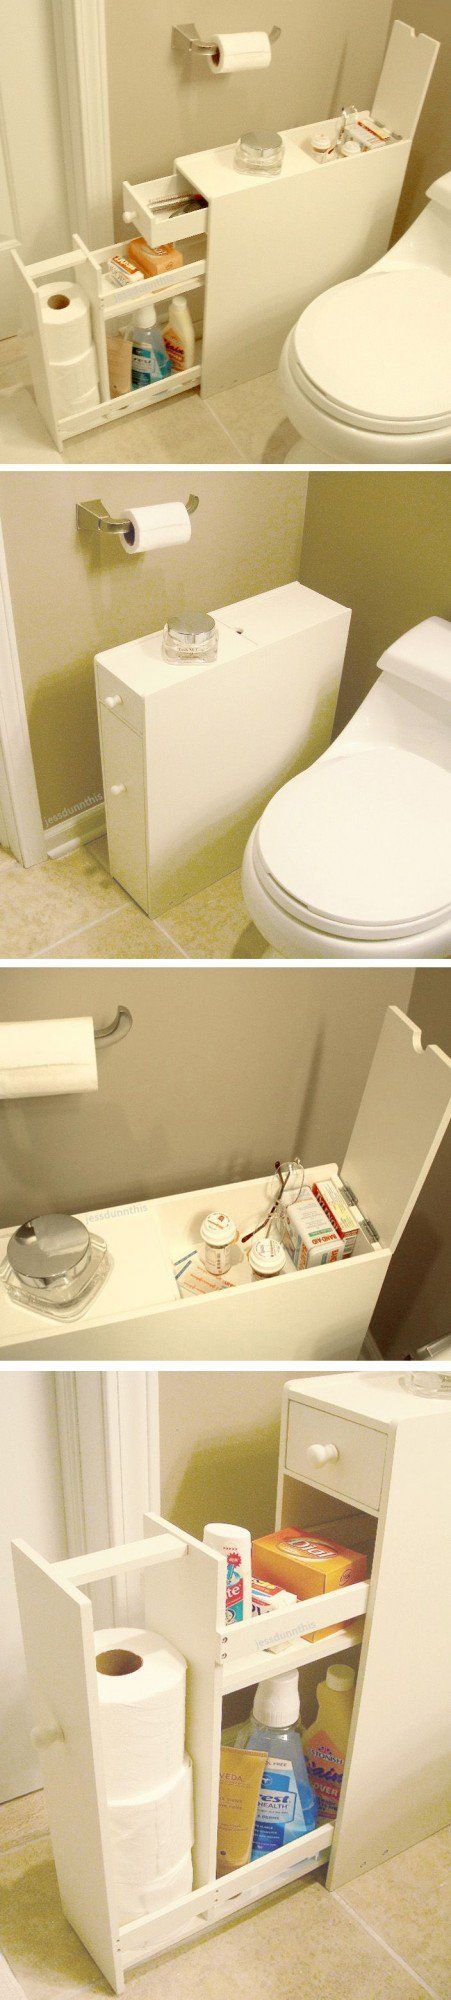 Small bathroom ideas pinterest - Tutorialous Com These 25 Small Bathroom Storage Ideas Are Going To Amaze You